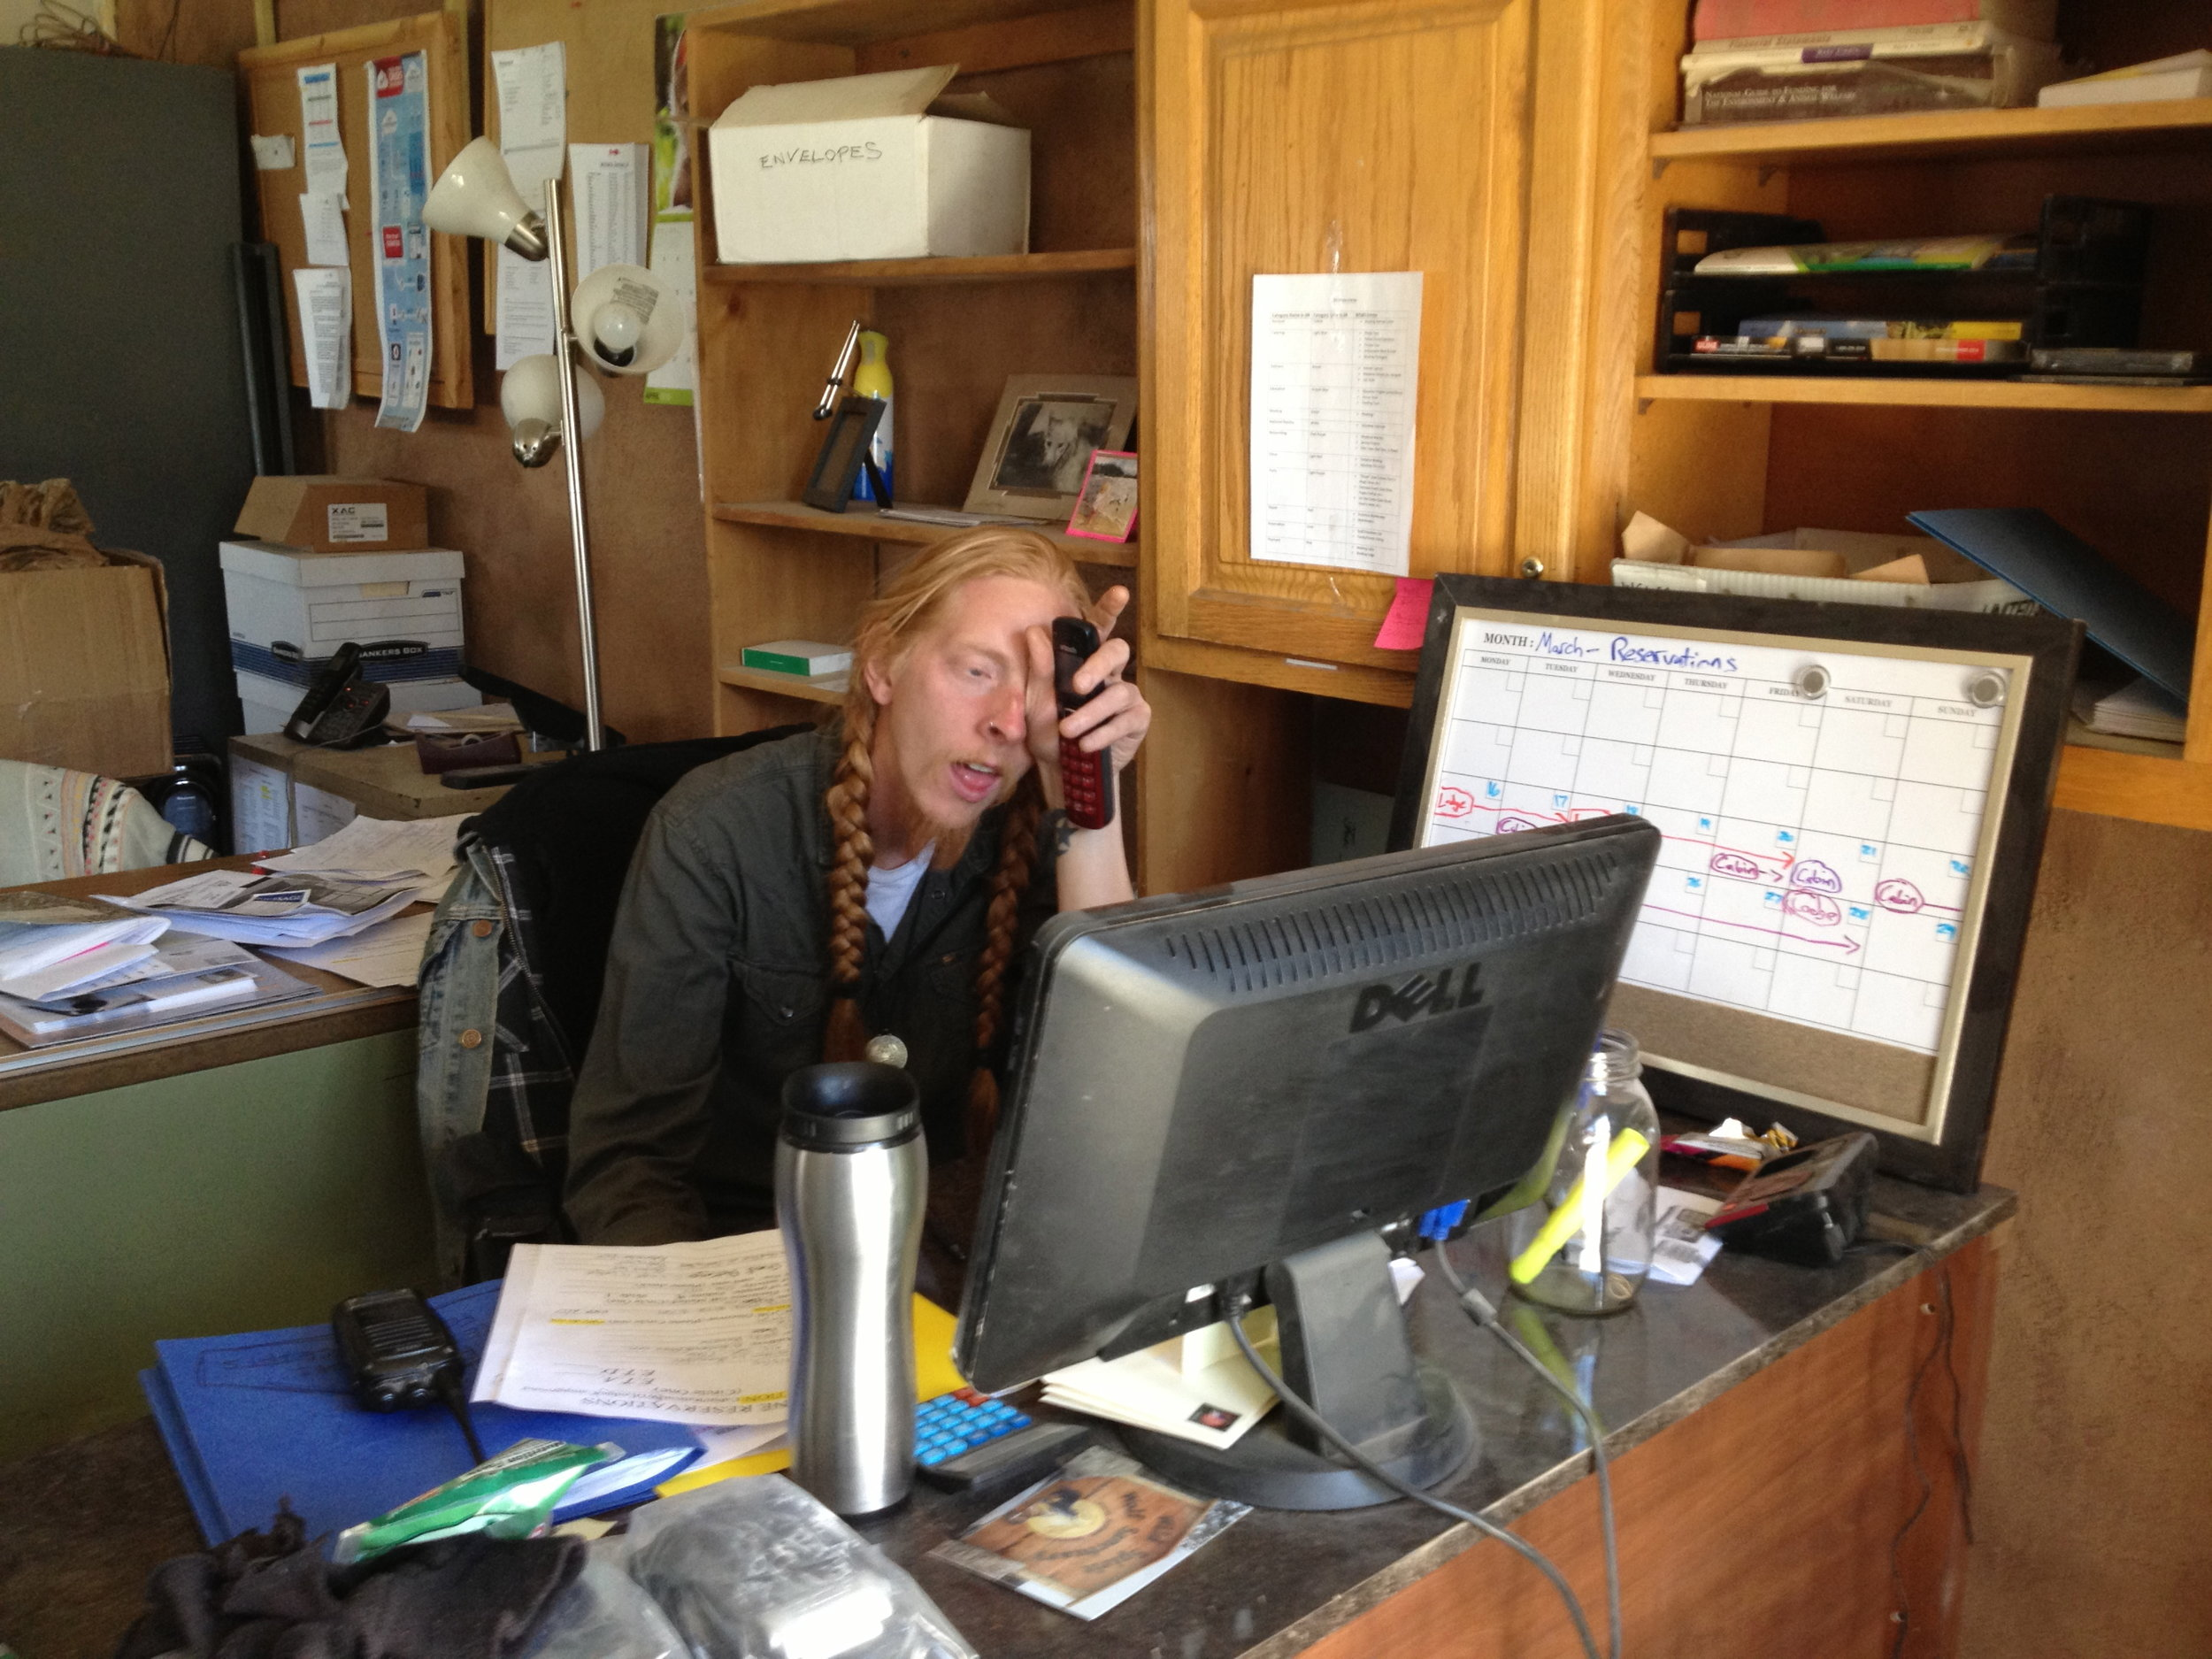 Event Coordinator Chadley swamped with phone calls in the office.